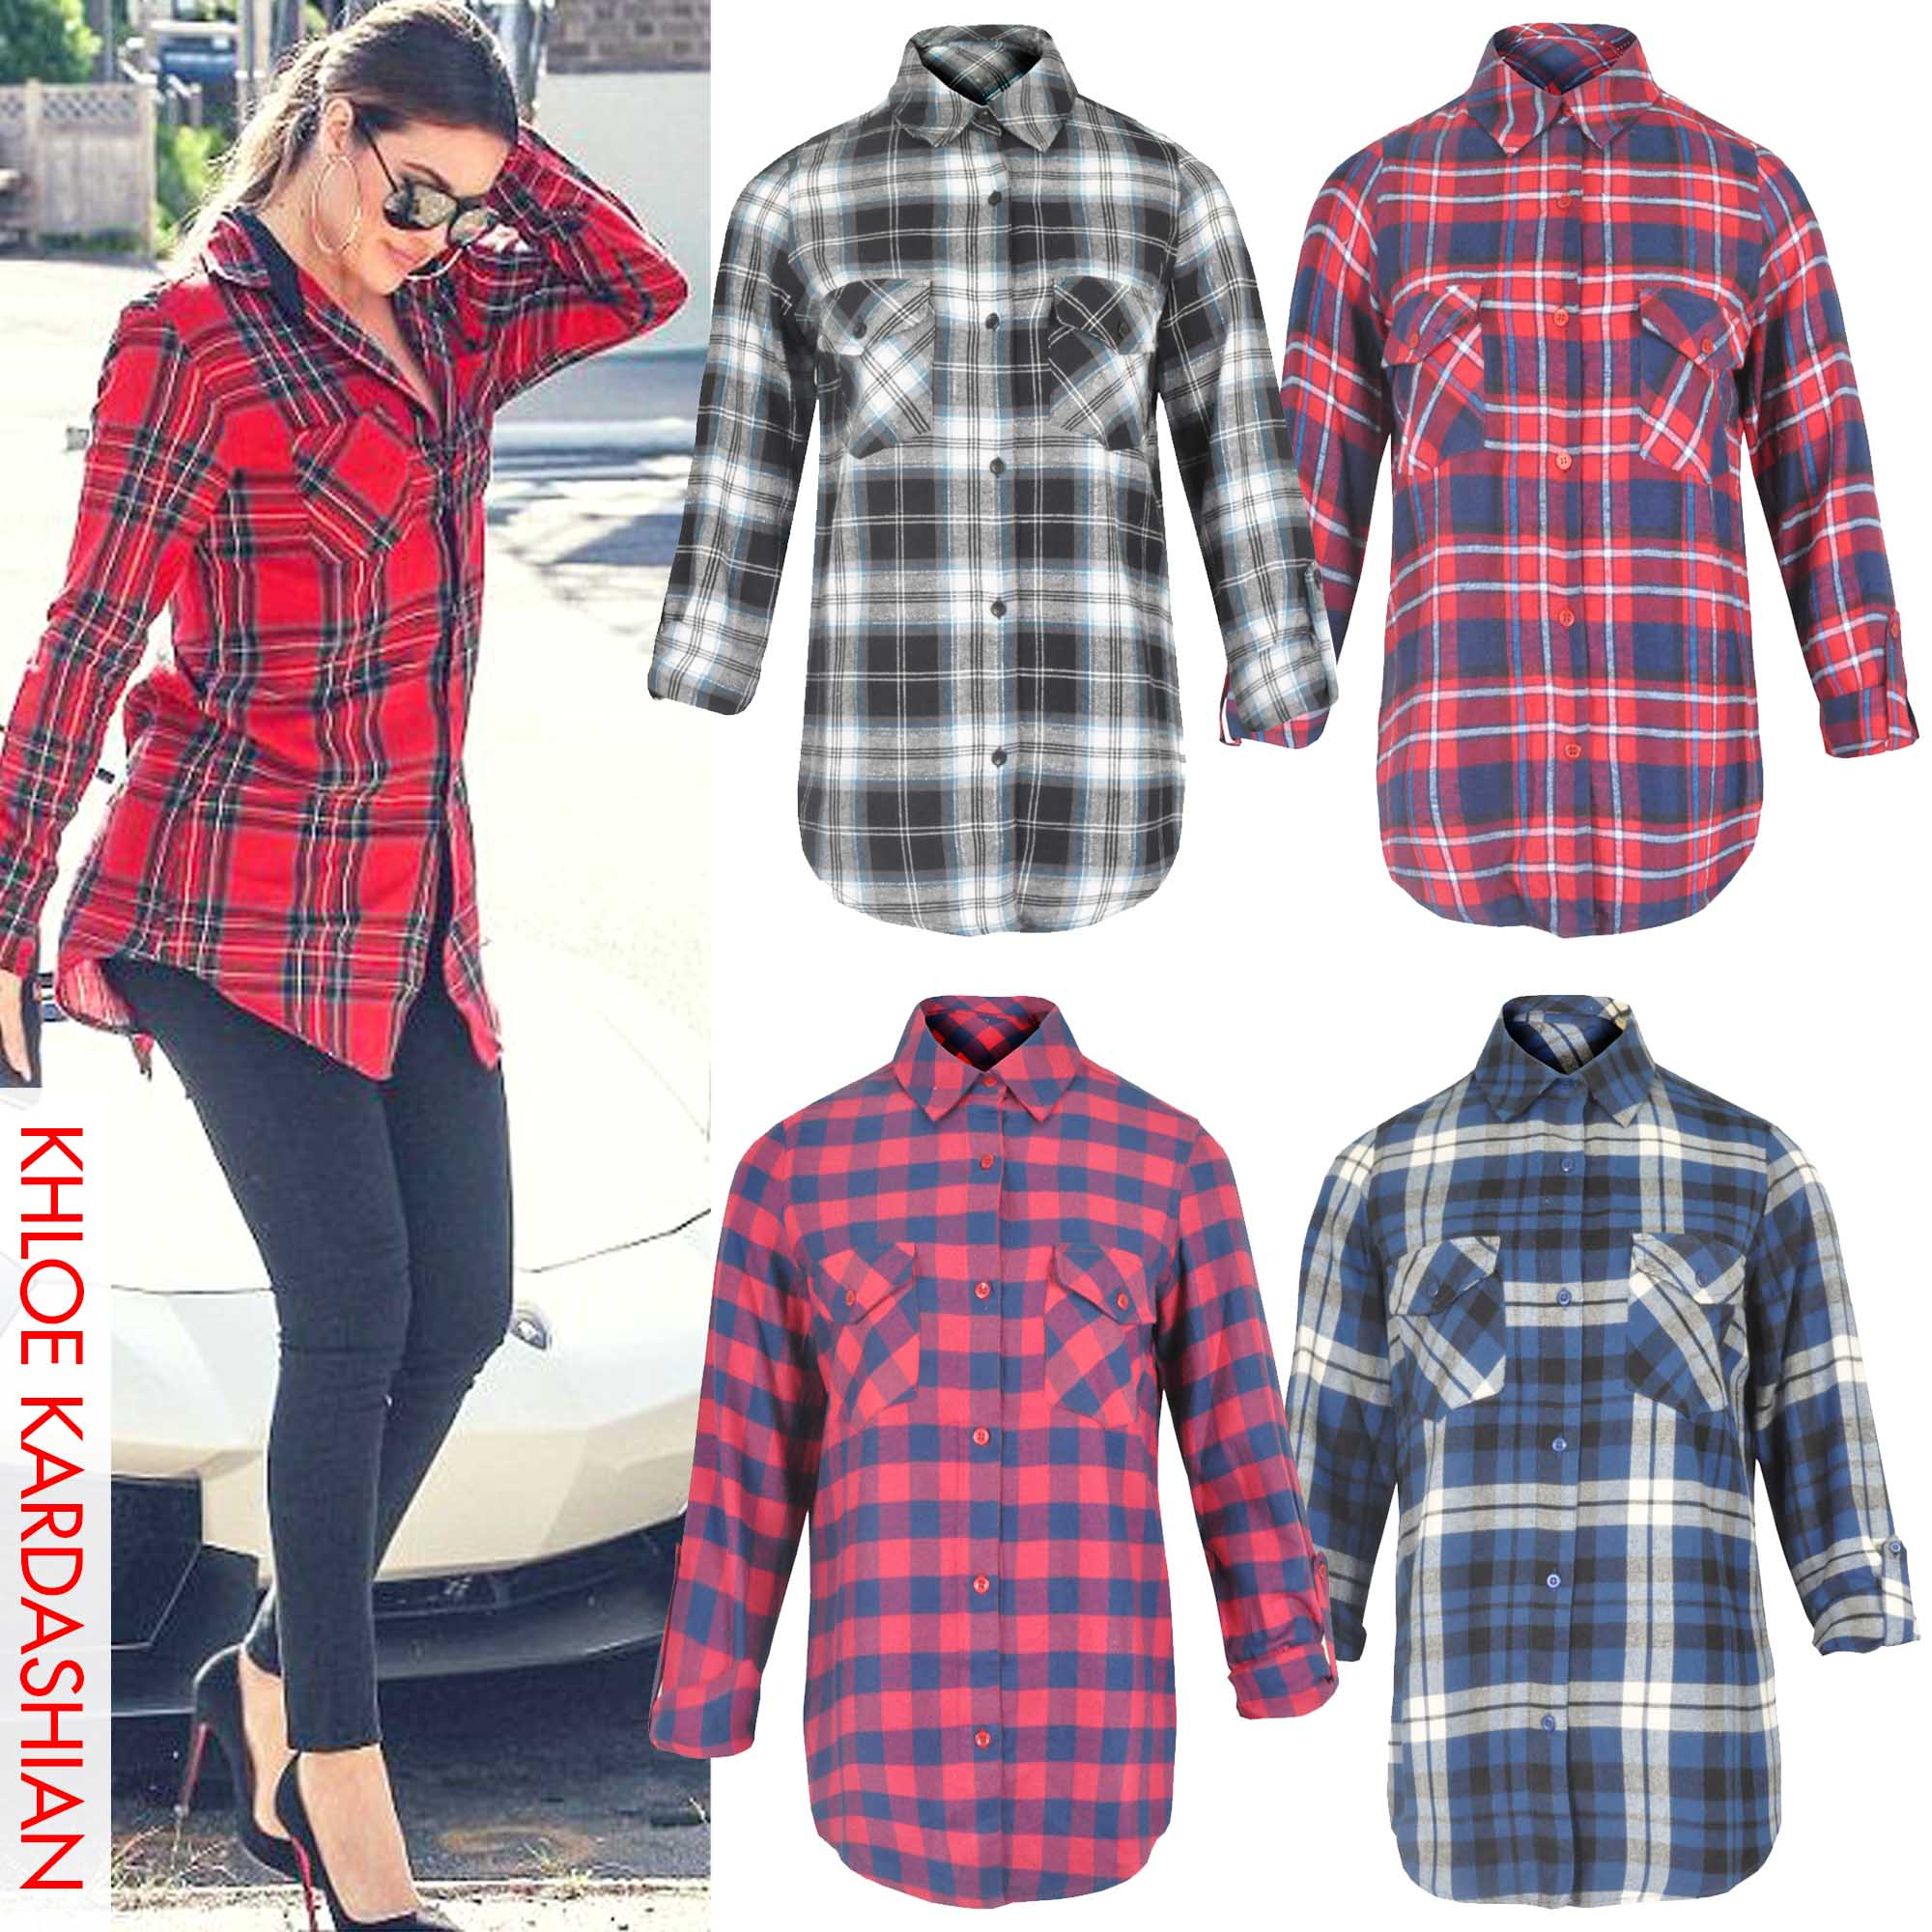 Womens Checked Shirt | Is Shirt